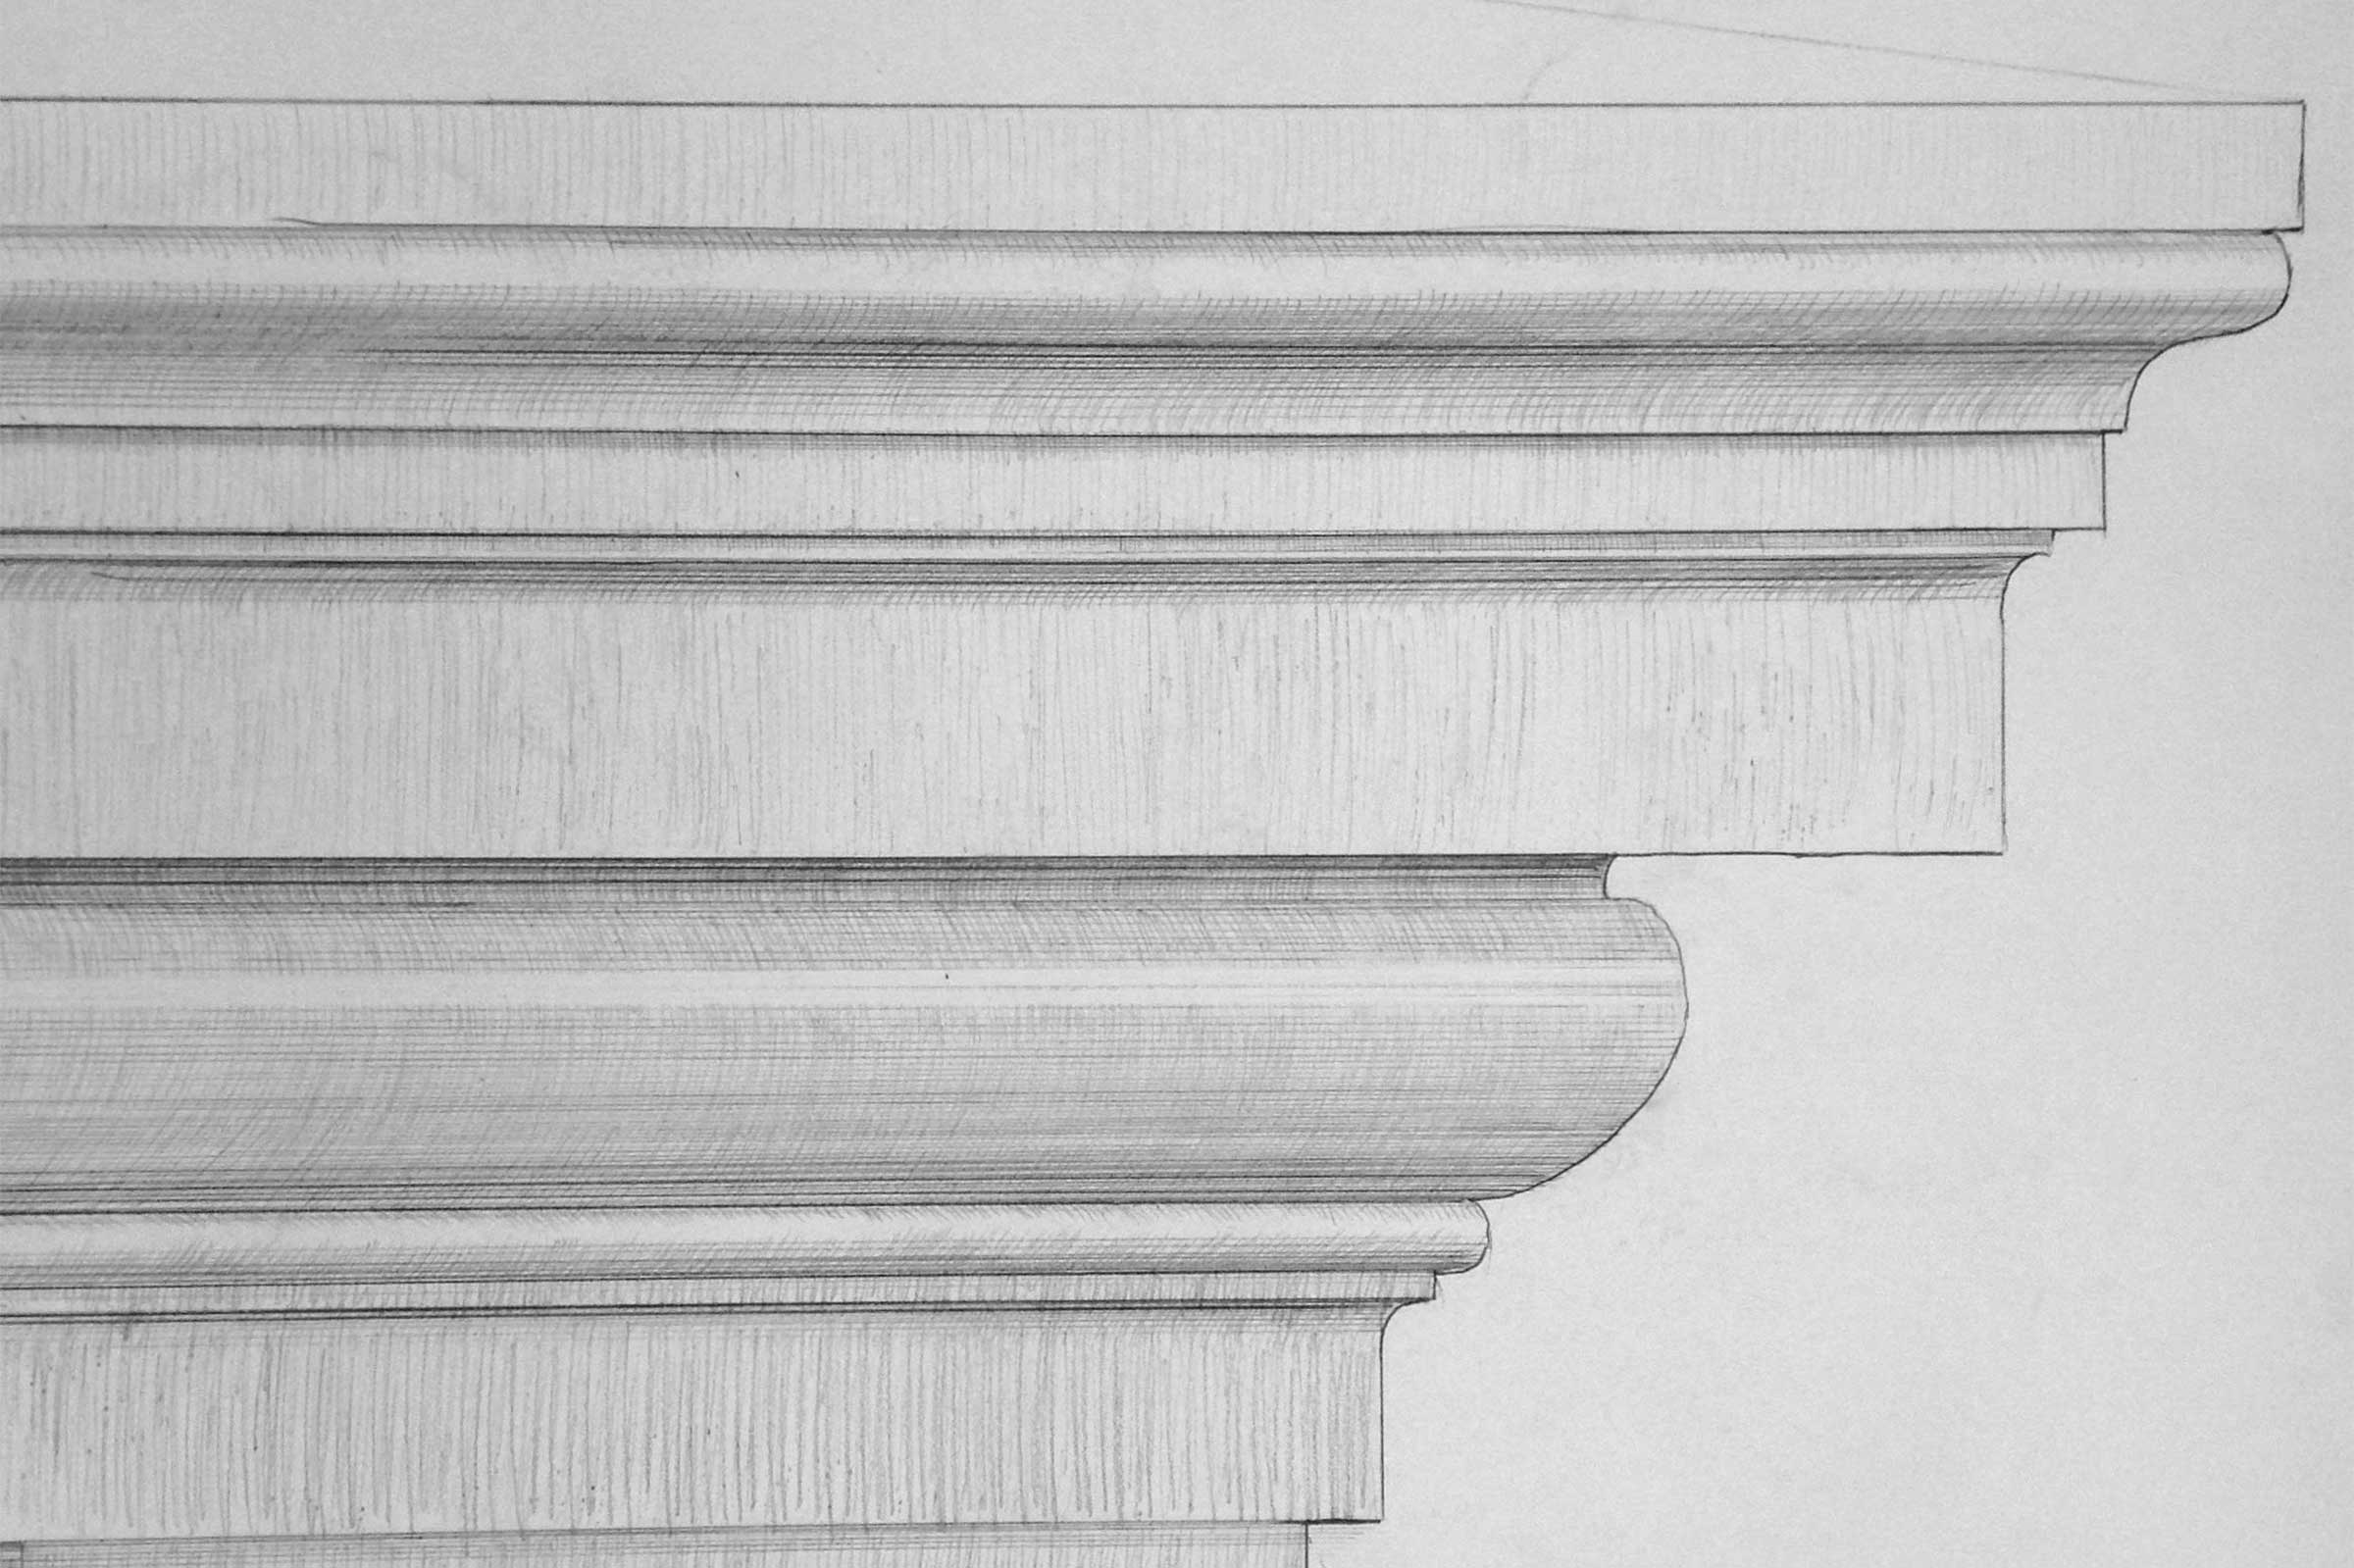 claus lind © sketches cornice gjersholt manor classical architecture stucco